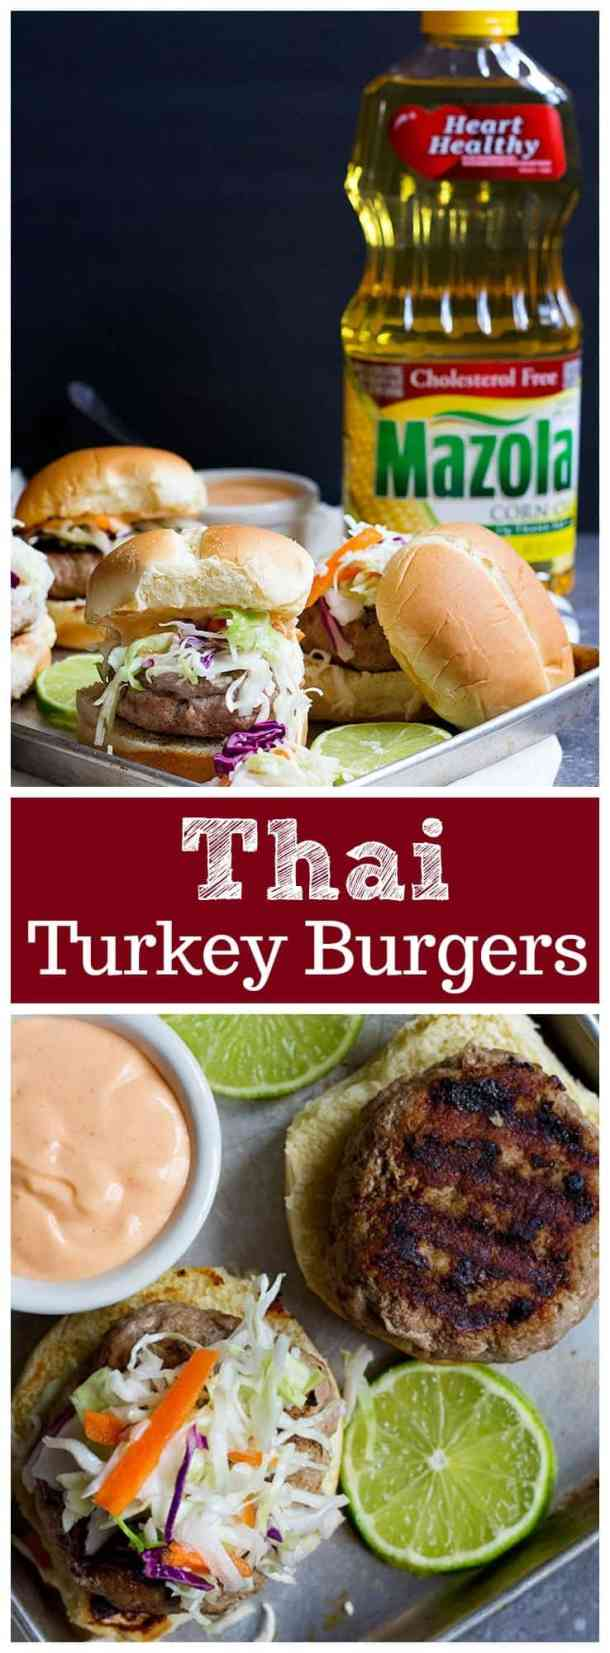 Thai Turkey Burgers |  Turkey Burger |  Asian Burger | Asian Slaw | Thai Sandwich | Thai Burger | Thai Burger Recipe | Easy Asian Recipe | Healthy Burger Recipe | Turkey Burger on the Stove | UnicornsintheKitchen.com #ad #  #SimpleSwap